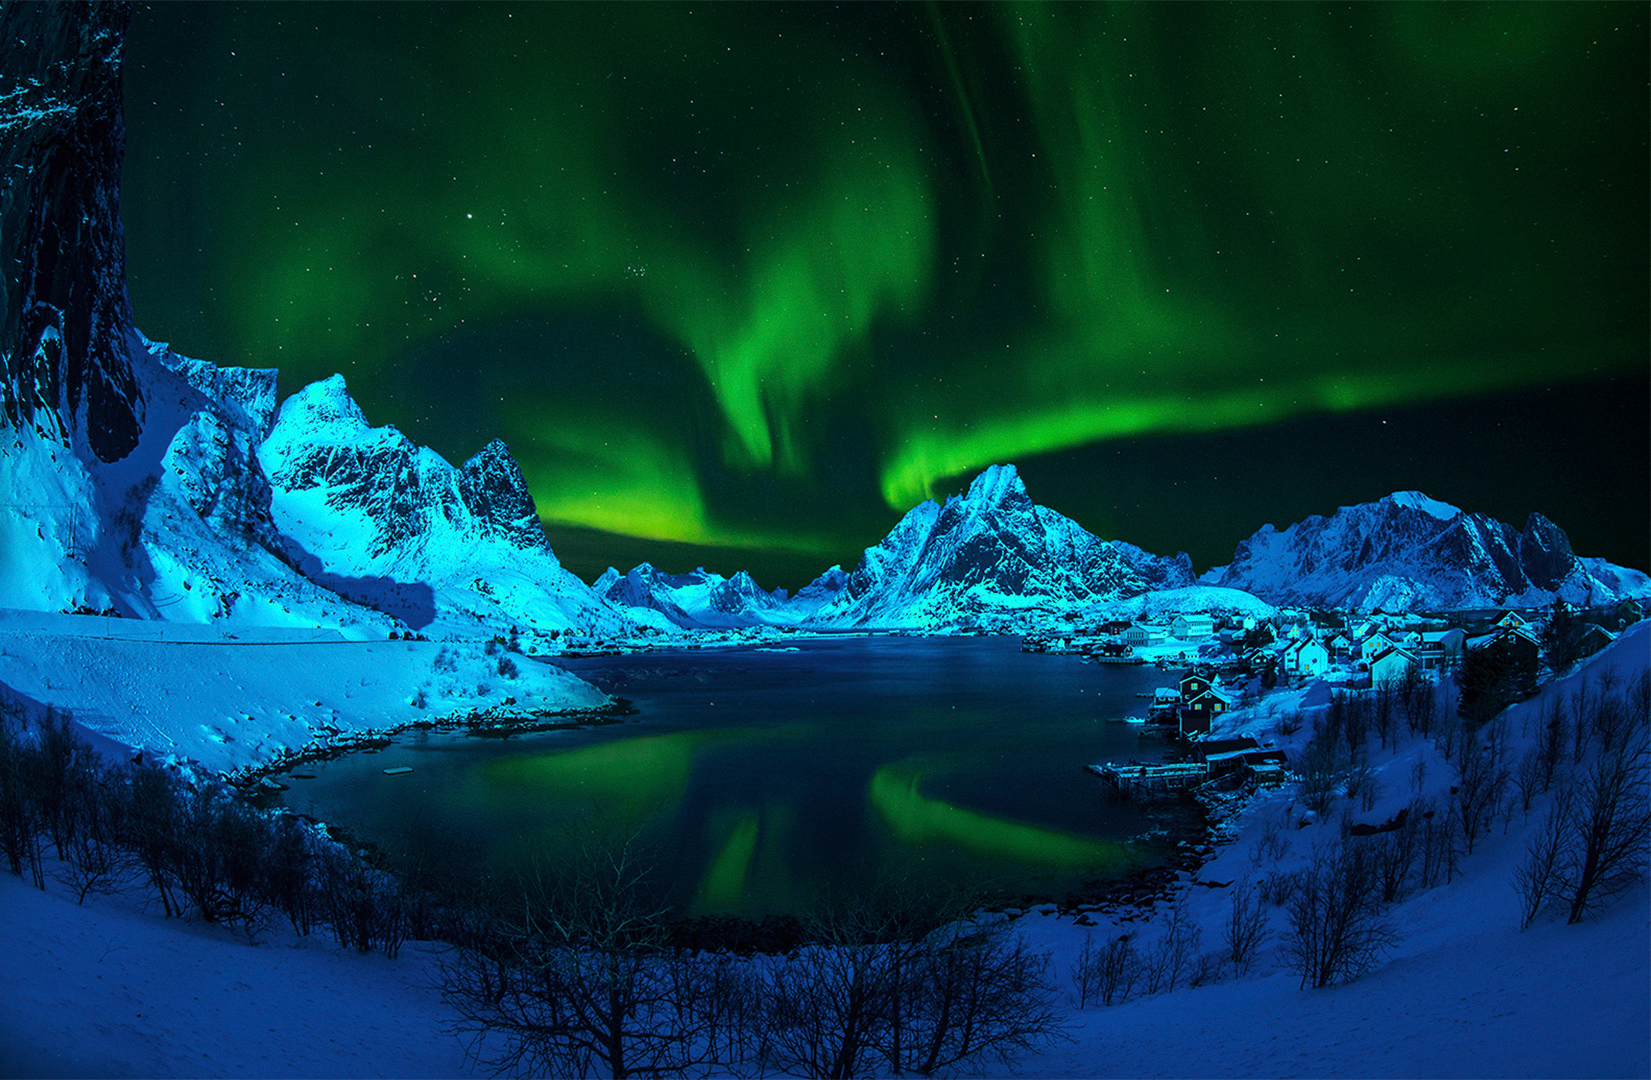 """2019 Open Colour Section """"Aurora Over Reine"""" by Kerry  Boytell EFIAP/b, MAPS: Awarded SSNEP Silver Medal"""